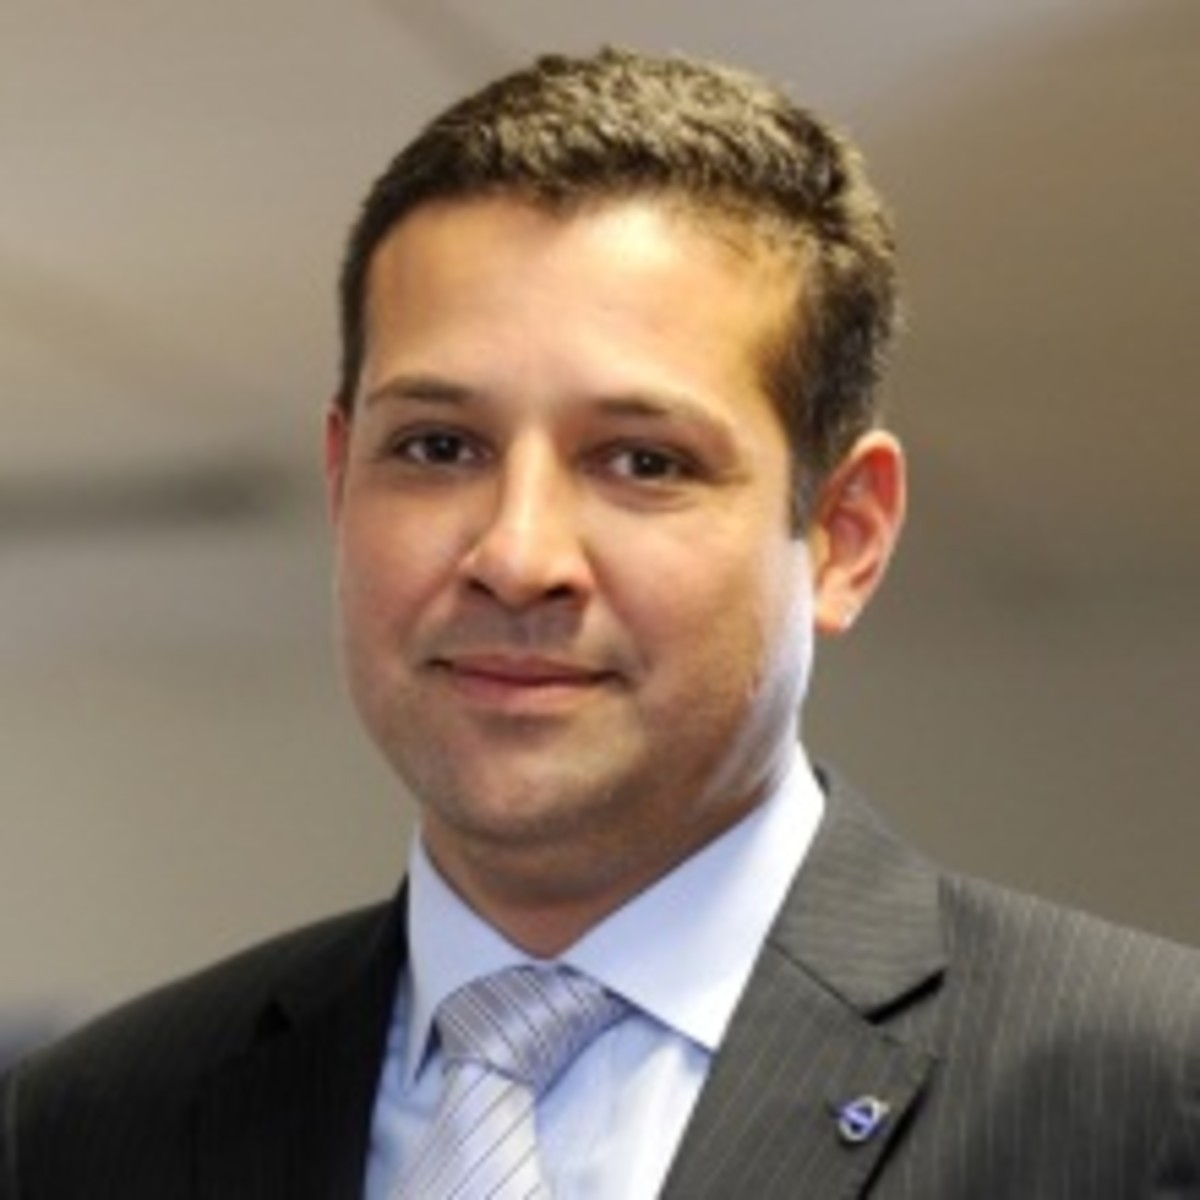 Gabriel Barsalini as general manager, South America.